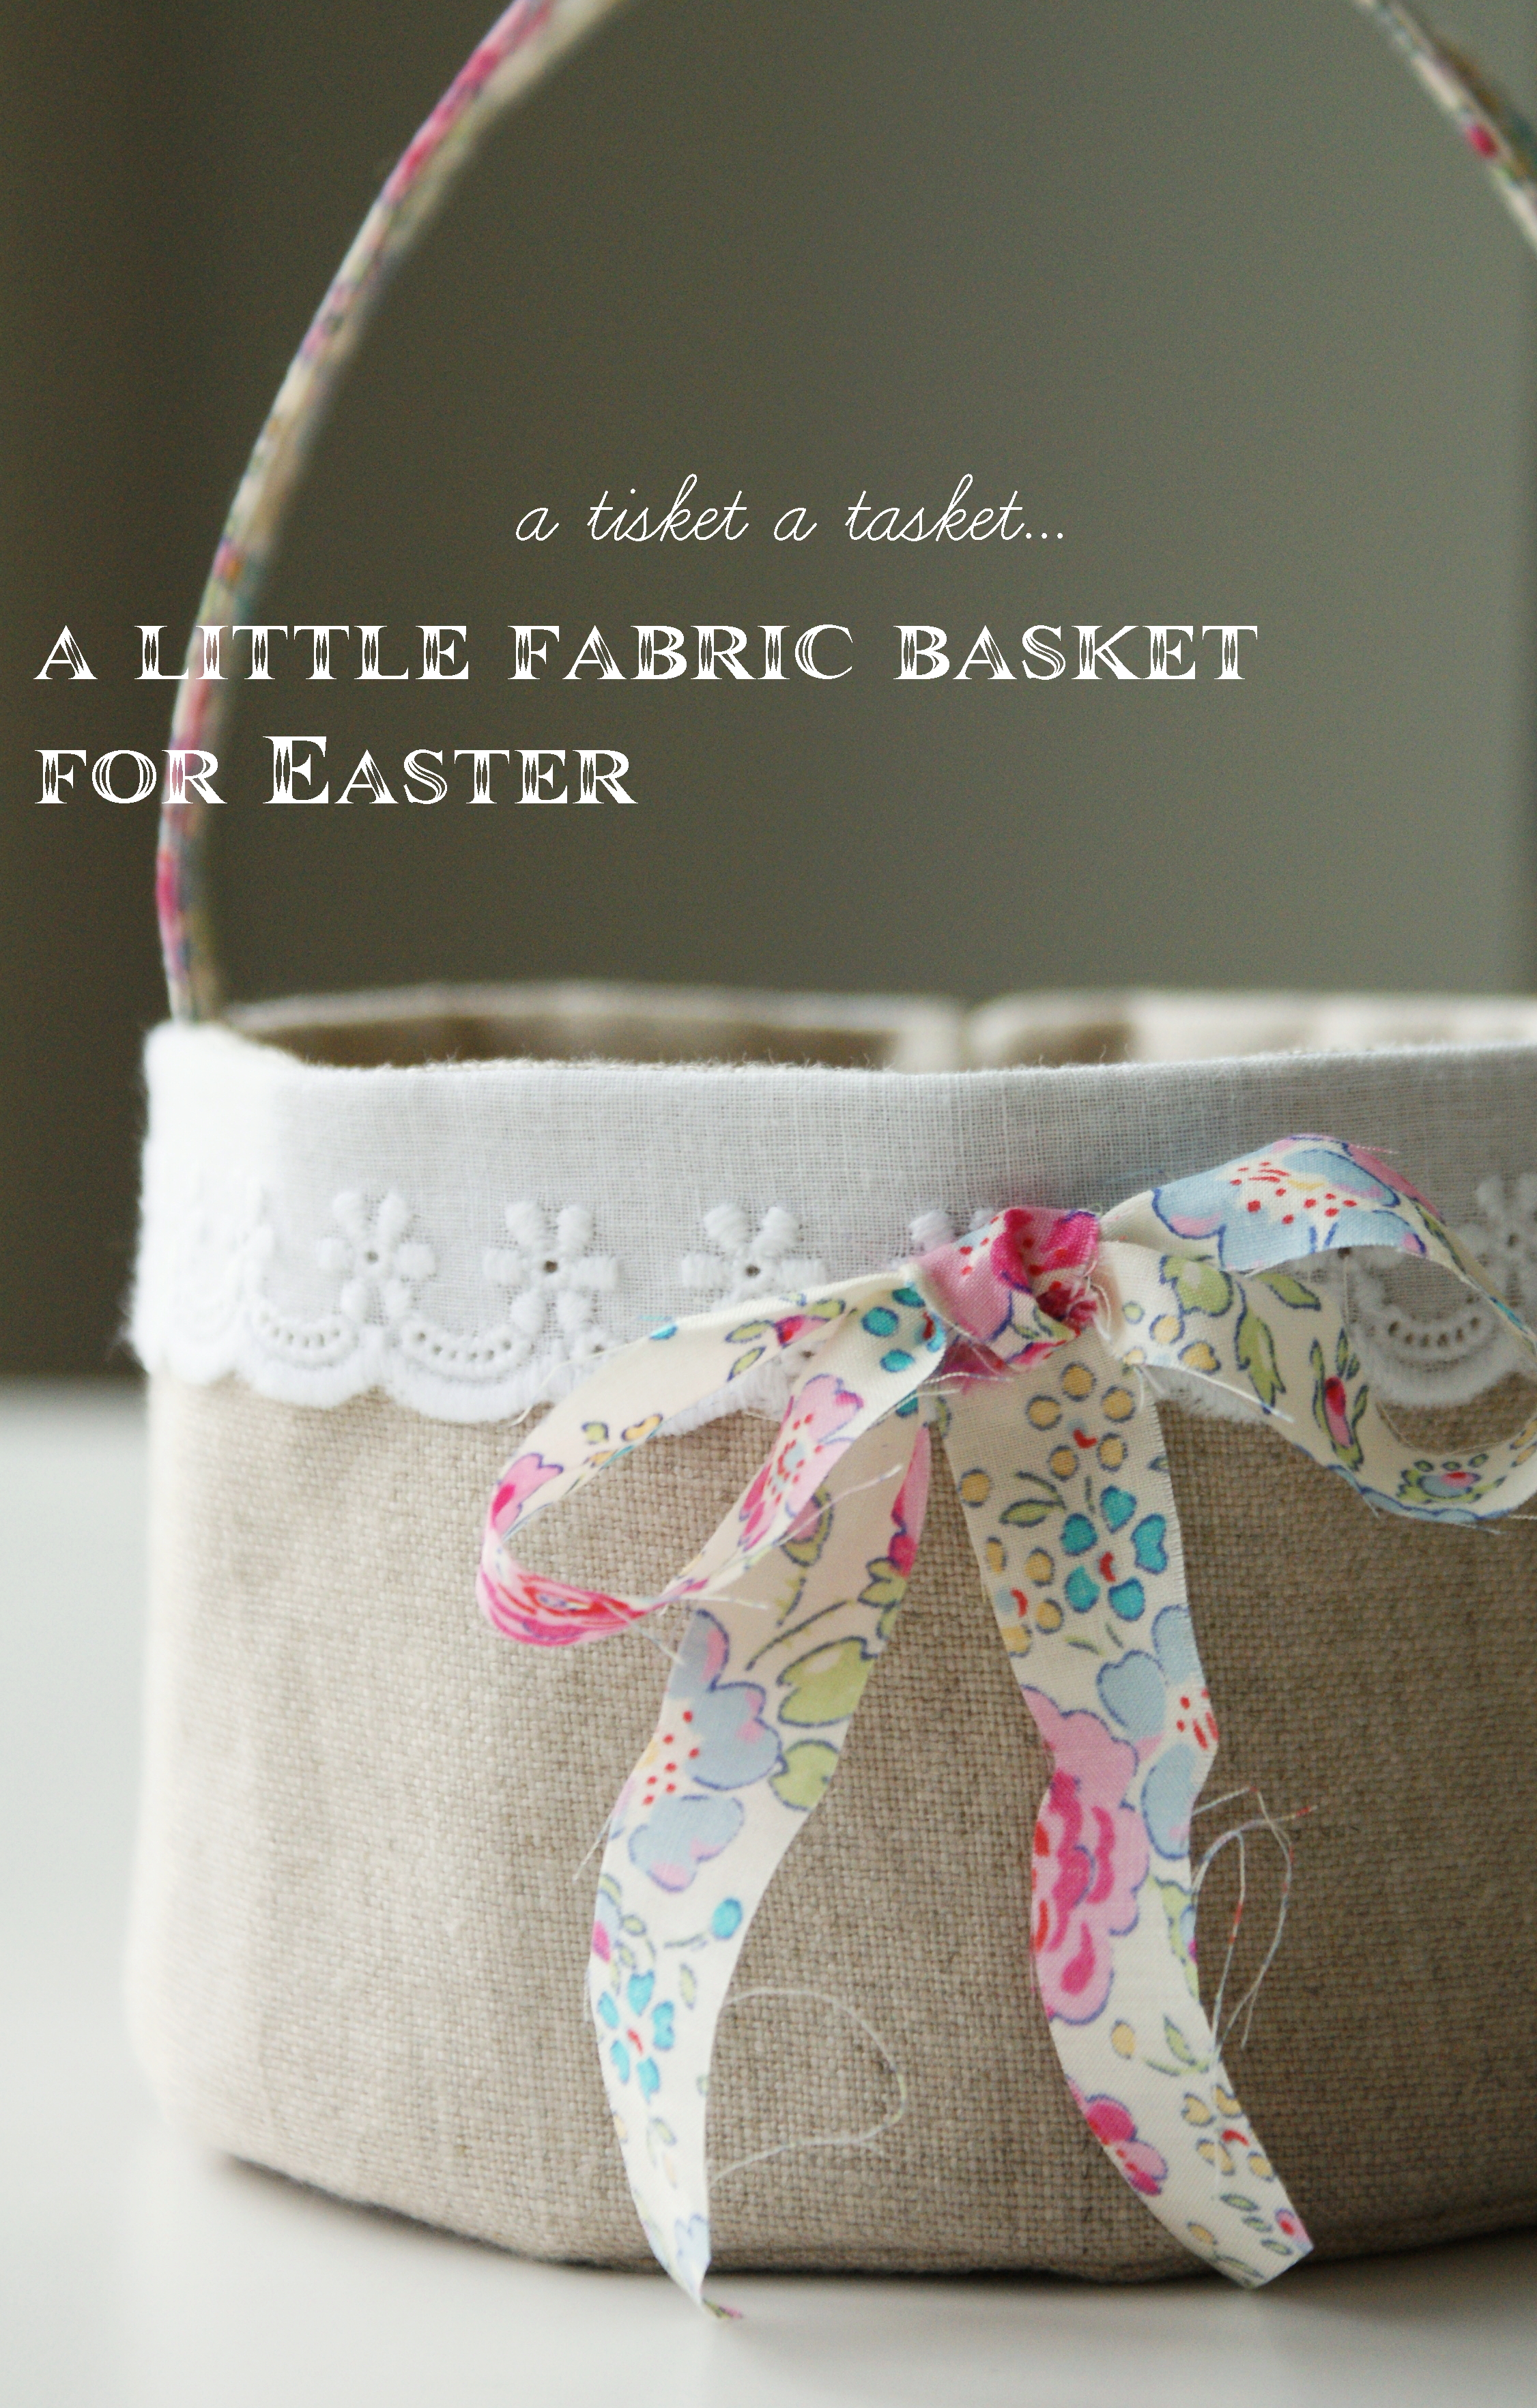 23 cute homemade easter basket ideas easter gifts for kids and 23 cute homemade easter basket ideas easter gifts for kids and adults negle Image collections